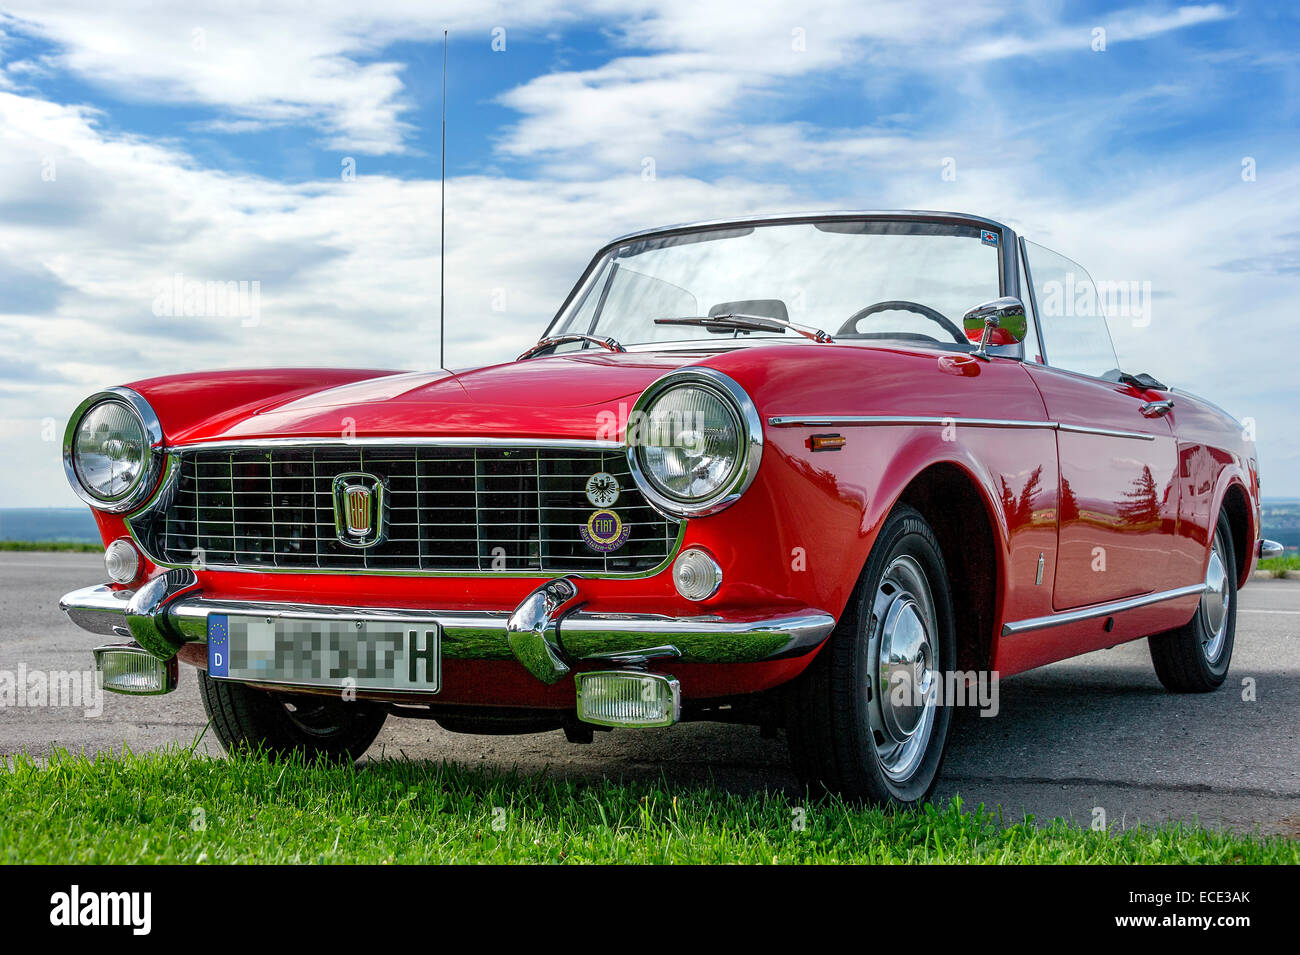 Vintage 1500 FIAT Spider, Cabriolet from 1963 to 1966, Bavaria, Germany - Stock Image